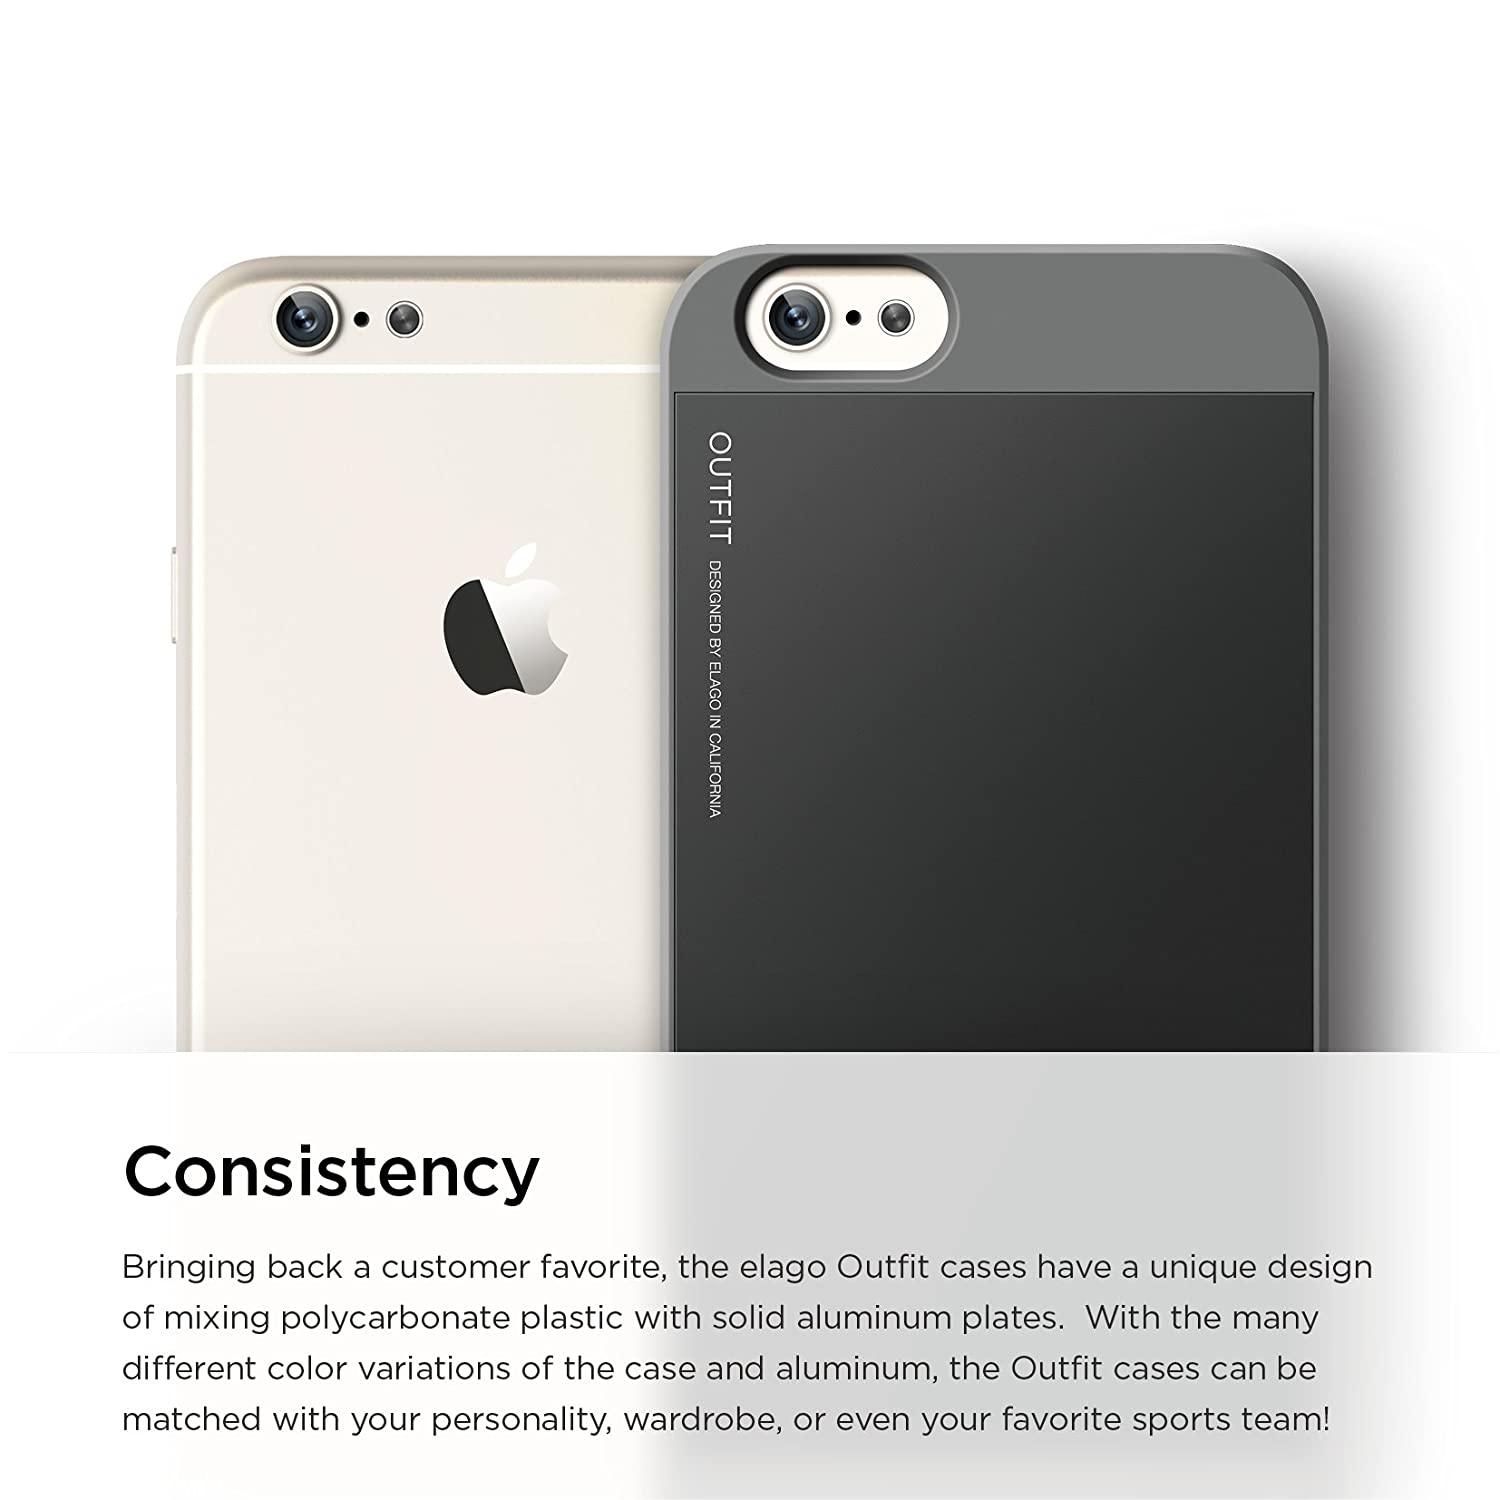 Elago S6 Outfit Aluminium Case for iPhone6 4.7 - Dark Gray / Black